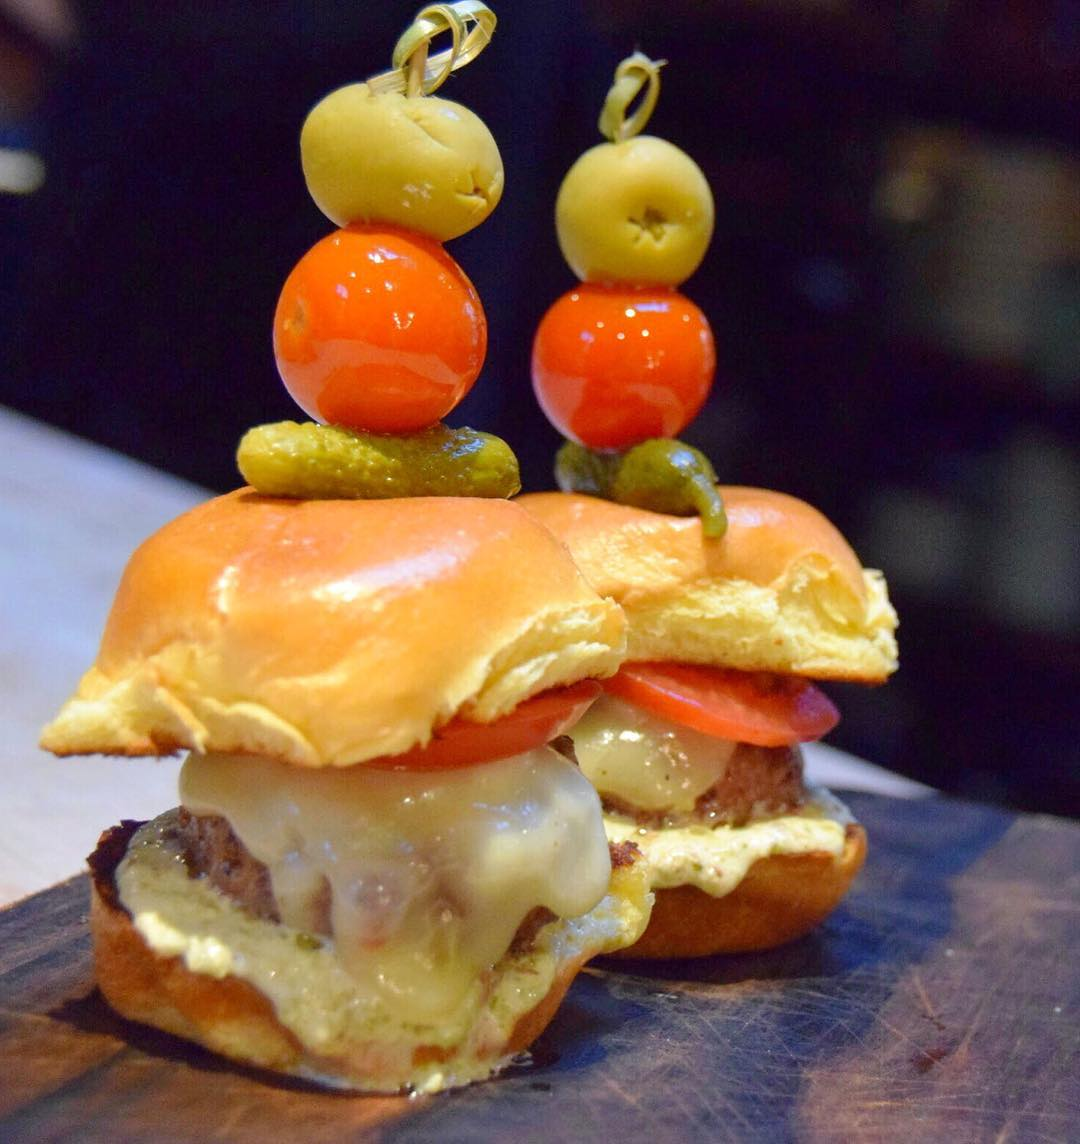 Dirty Burger Sliders at Antique Bar and Bakery!